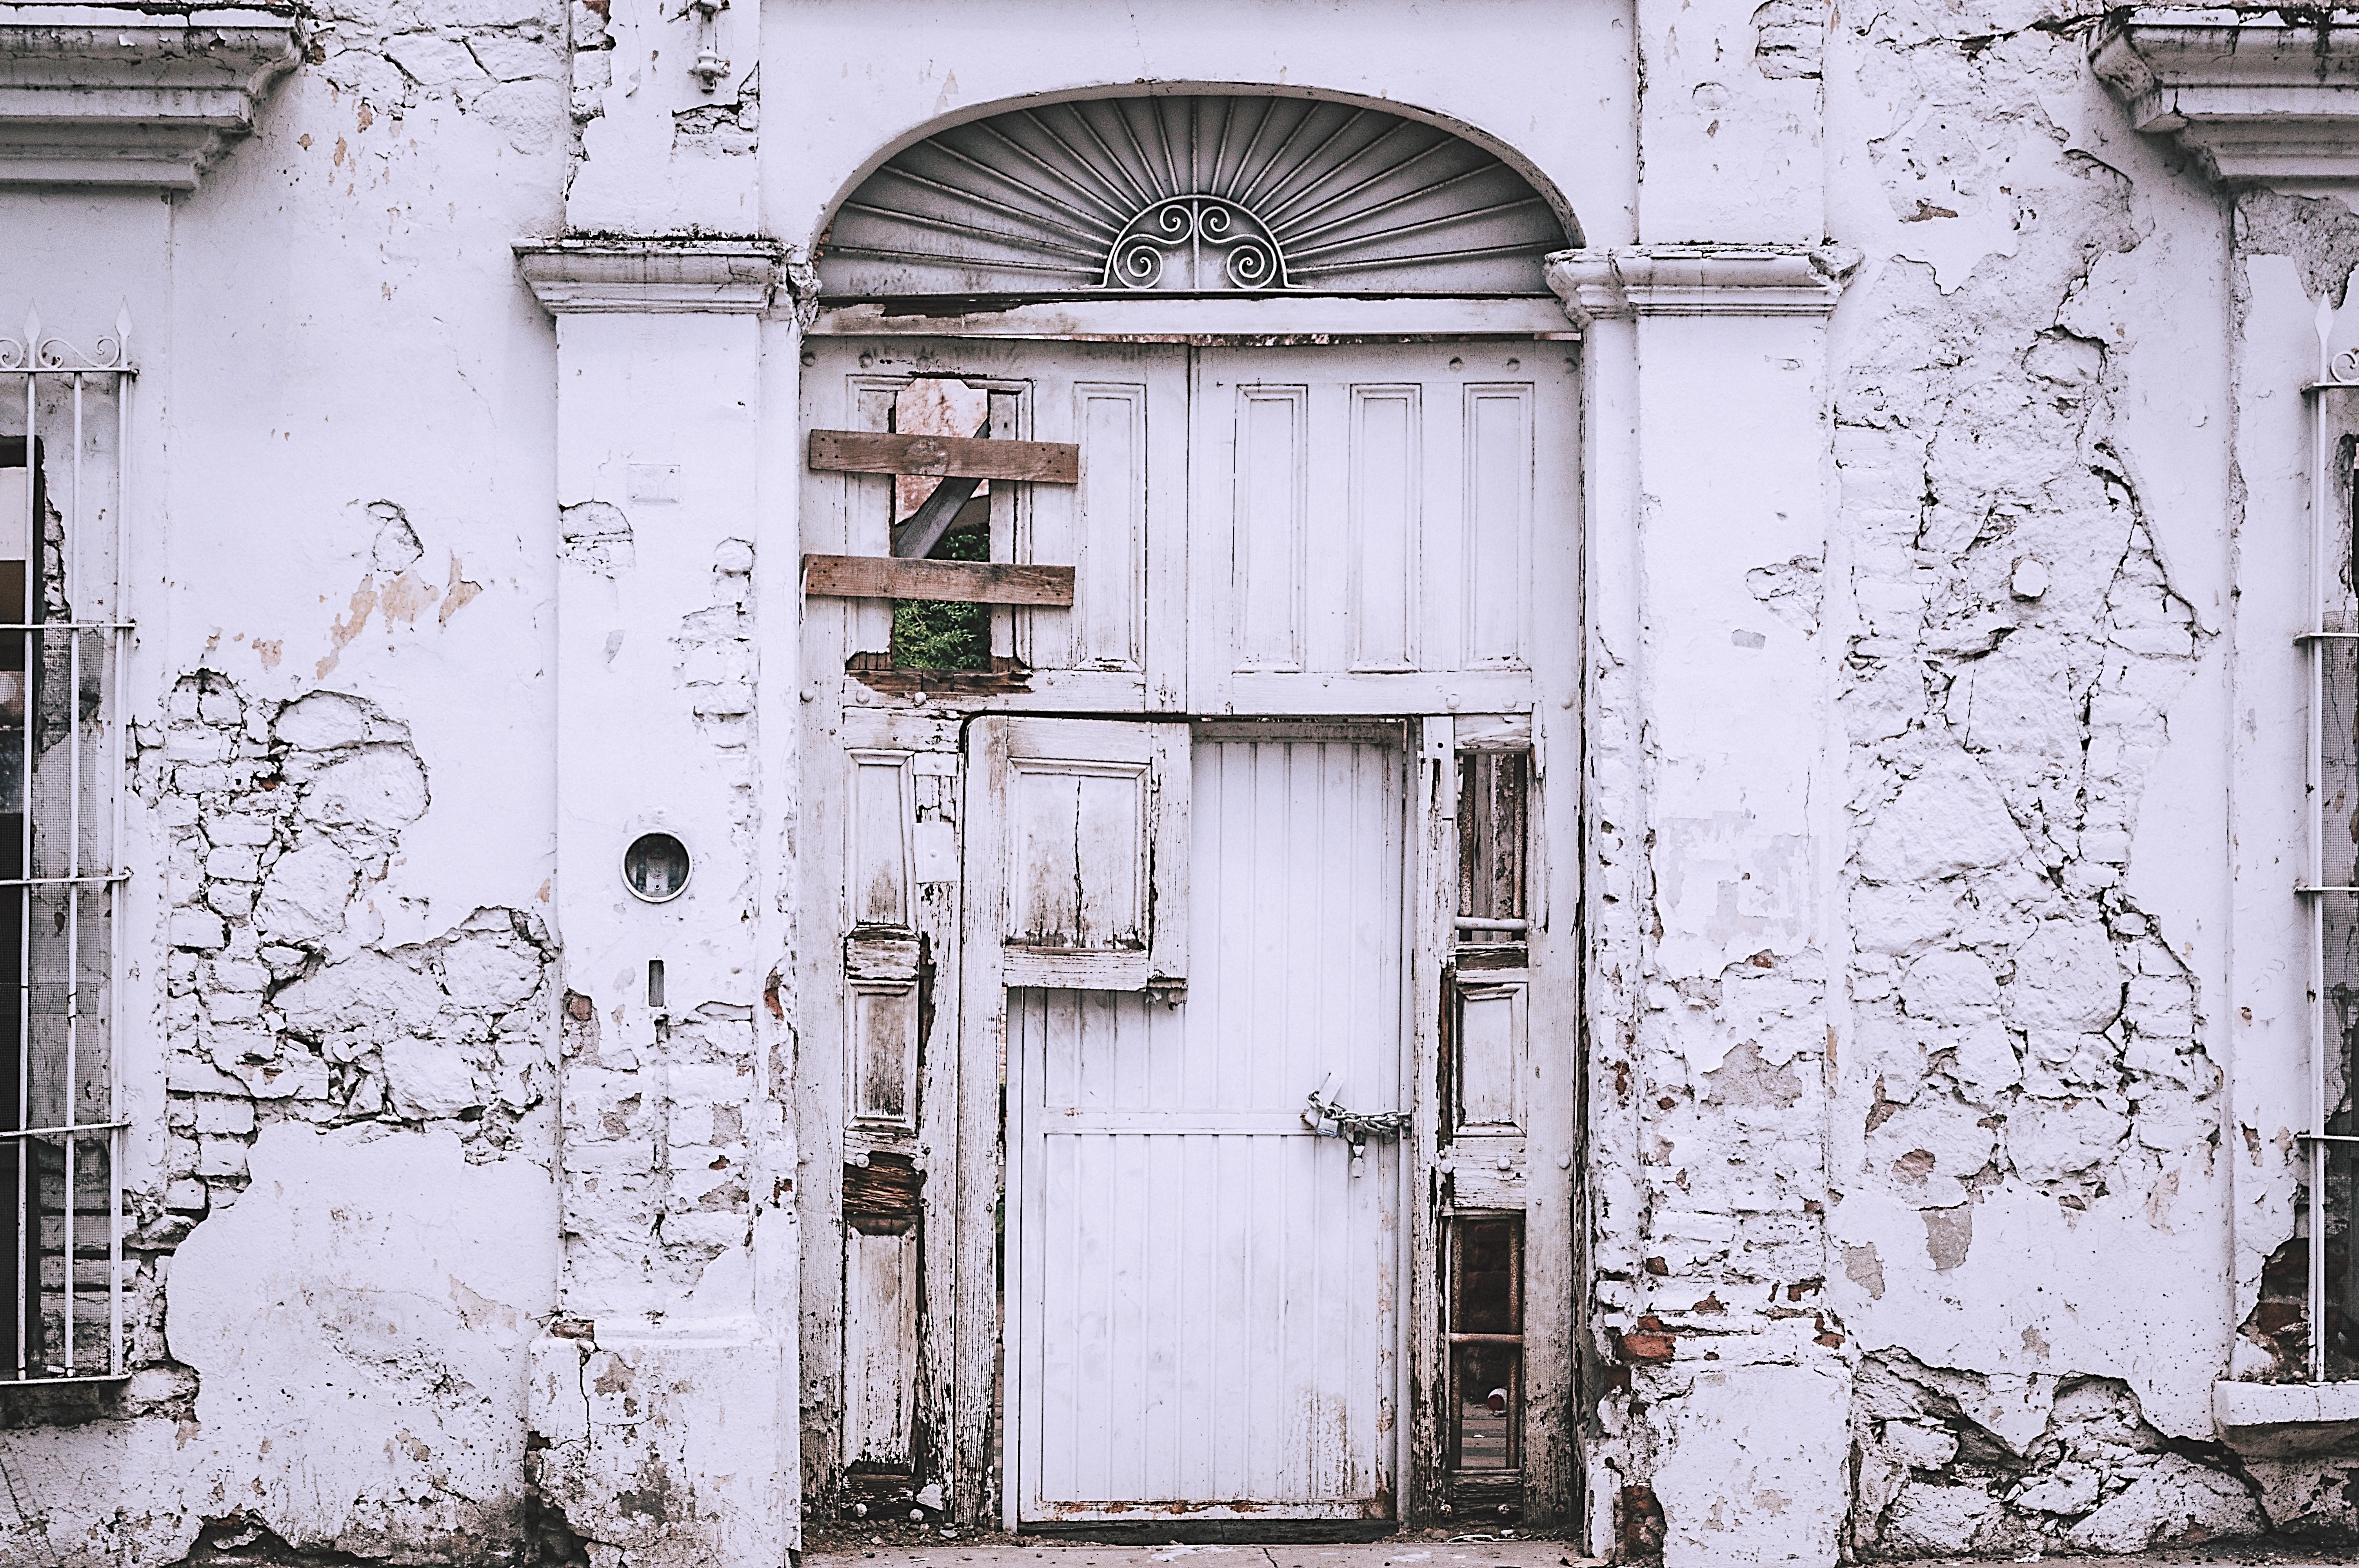 abandoned-antique-architecture-959308